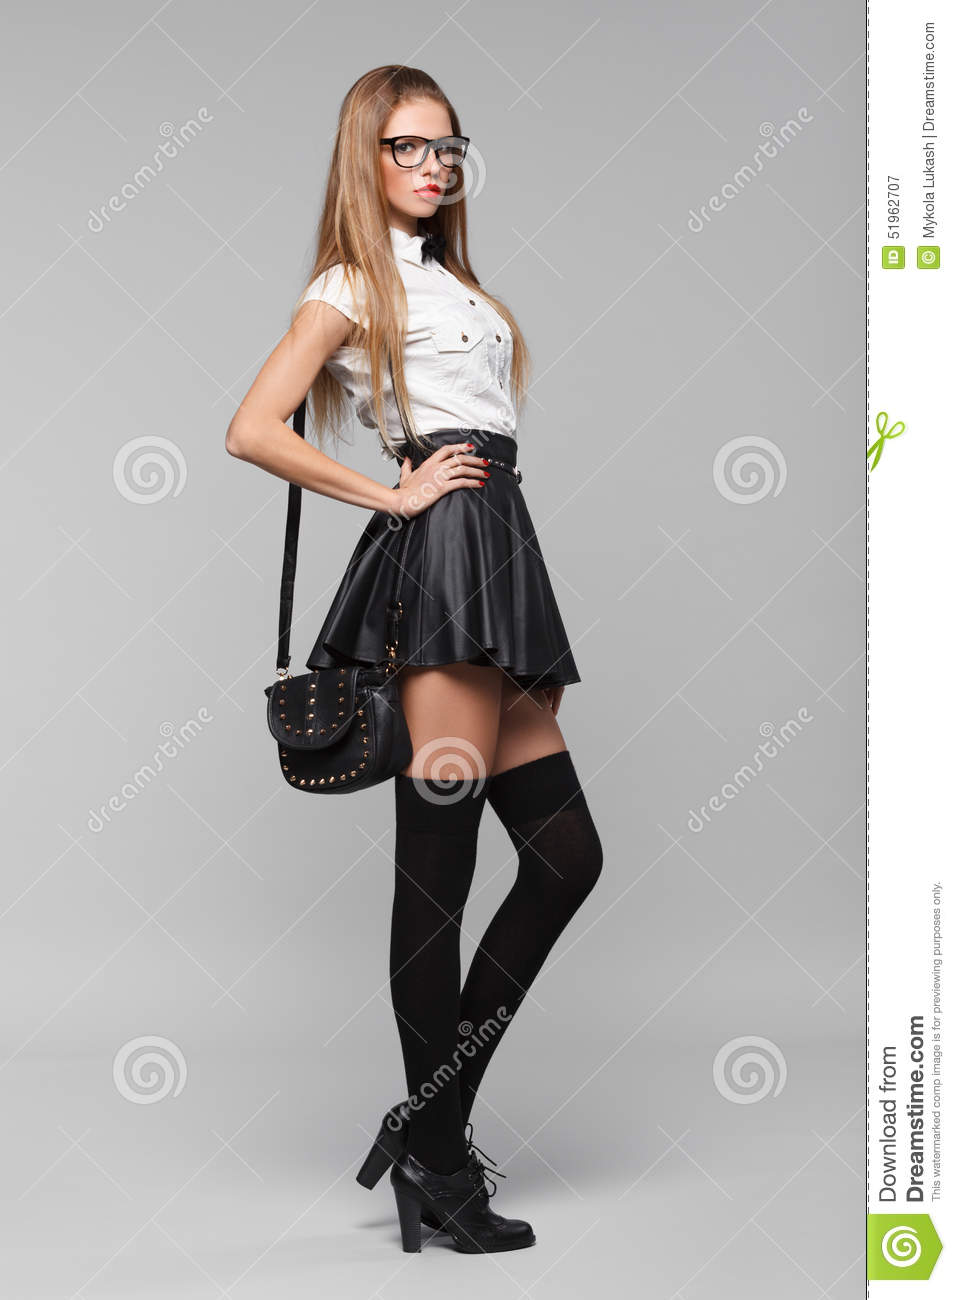 Beautiful Woman Is In Fashion Style In Black Mini Skirt Fashion Girl Stock Image Image Of